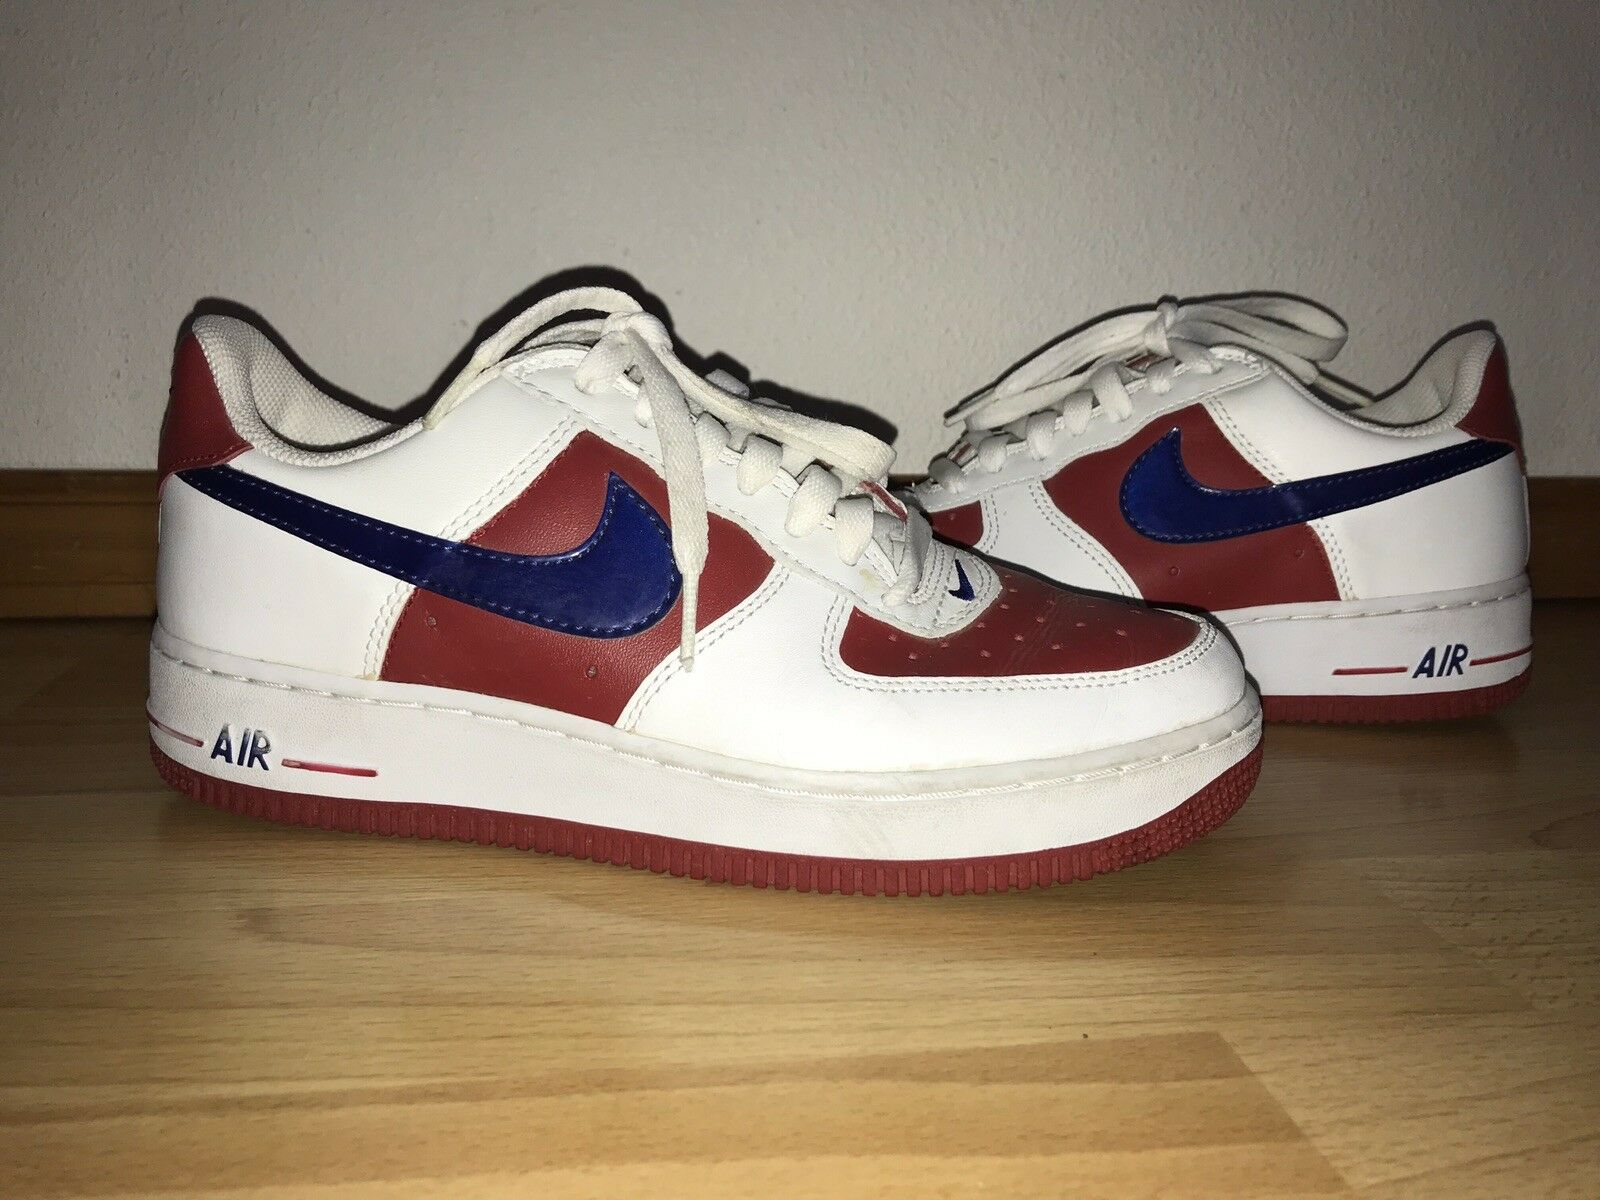 Nike Air Red White And bluee shoes